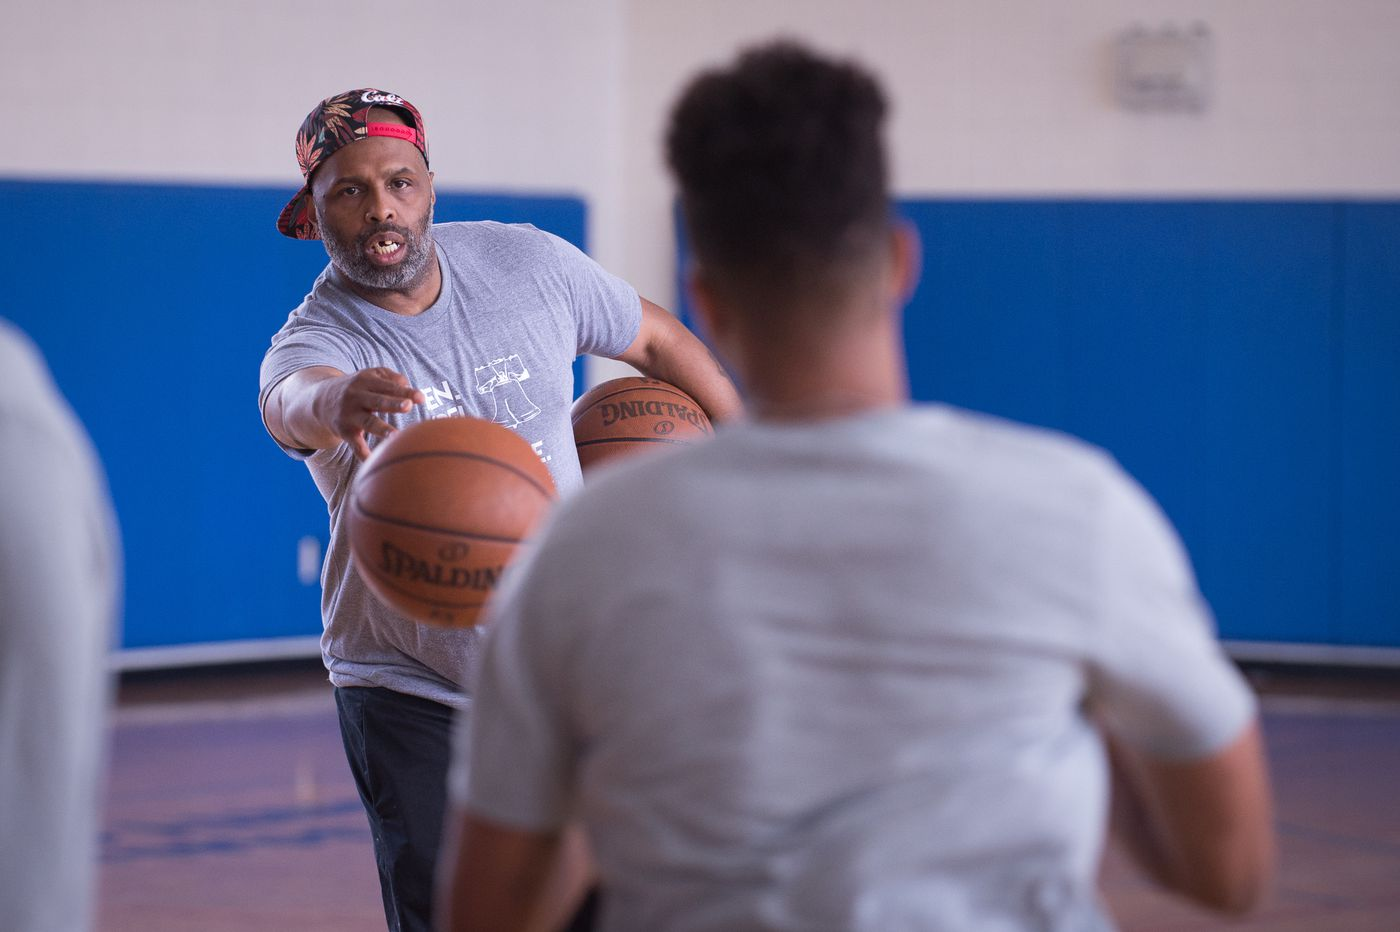 Keith Williams, longtime trainer of Markelle Fultz (front), throws Fultz a ball during drills at the Riggs LaSalle Recreation Center in Washington, DC, June 27th, 2017. CAMERON B. POLLACK / Staff Photographer